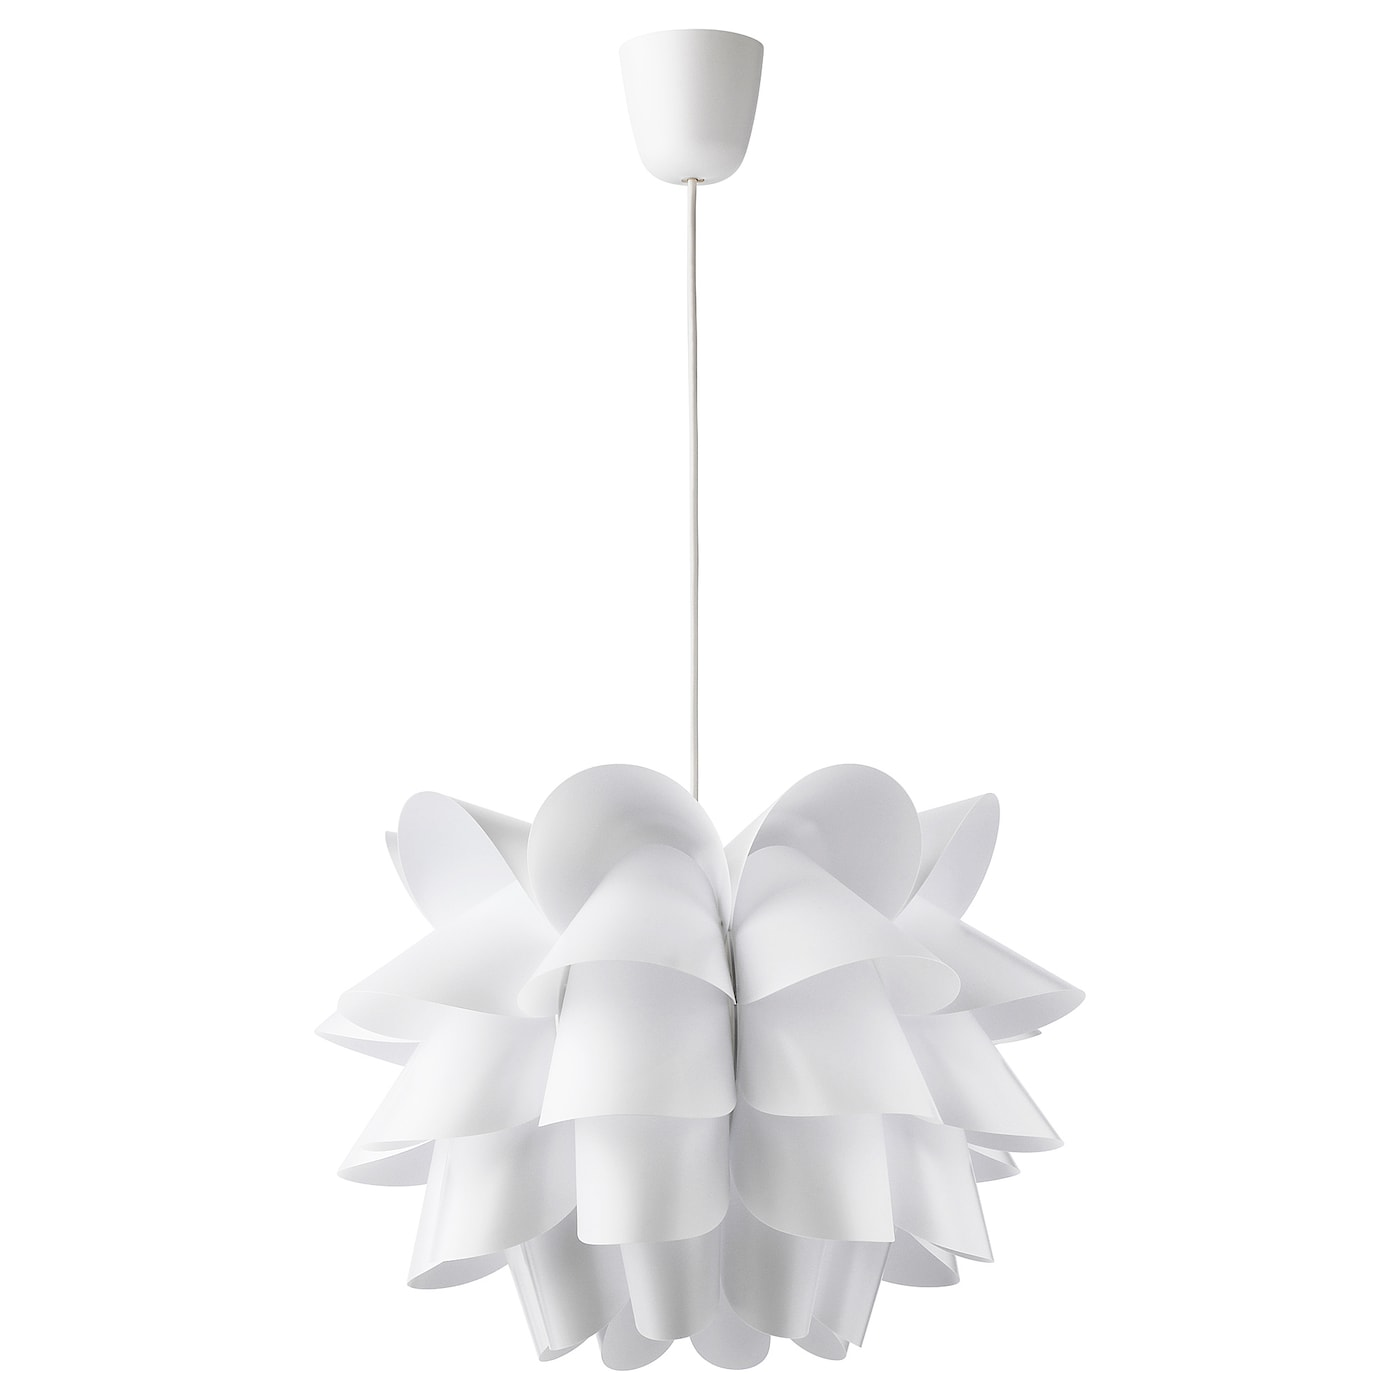 Pendant lighting pendant lamps chandeliers ikea ikea knappa pendant lamp gives a soft mood light aloadofball Images